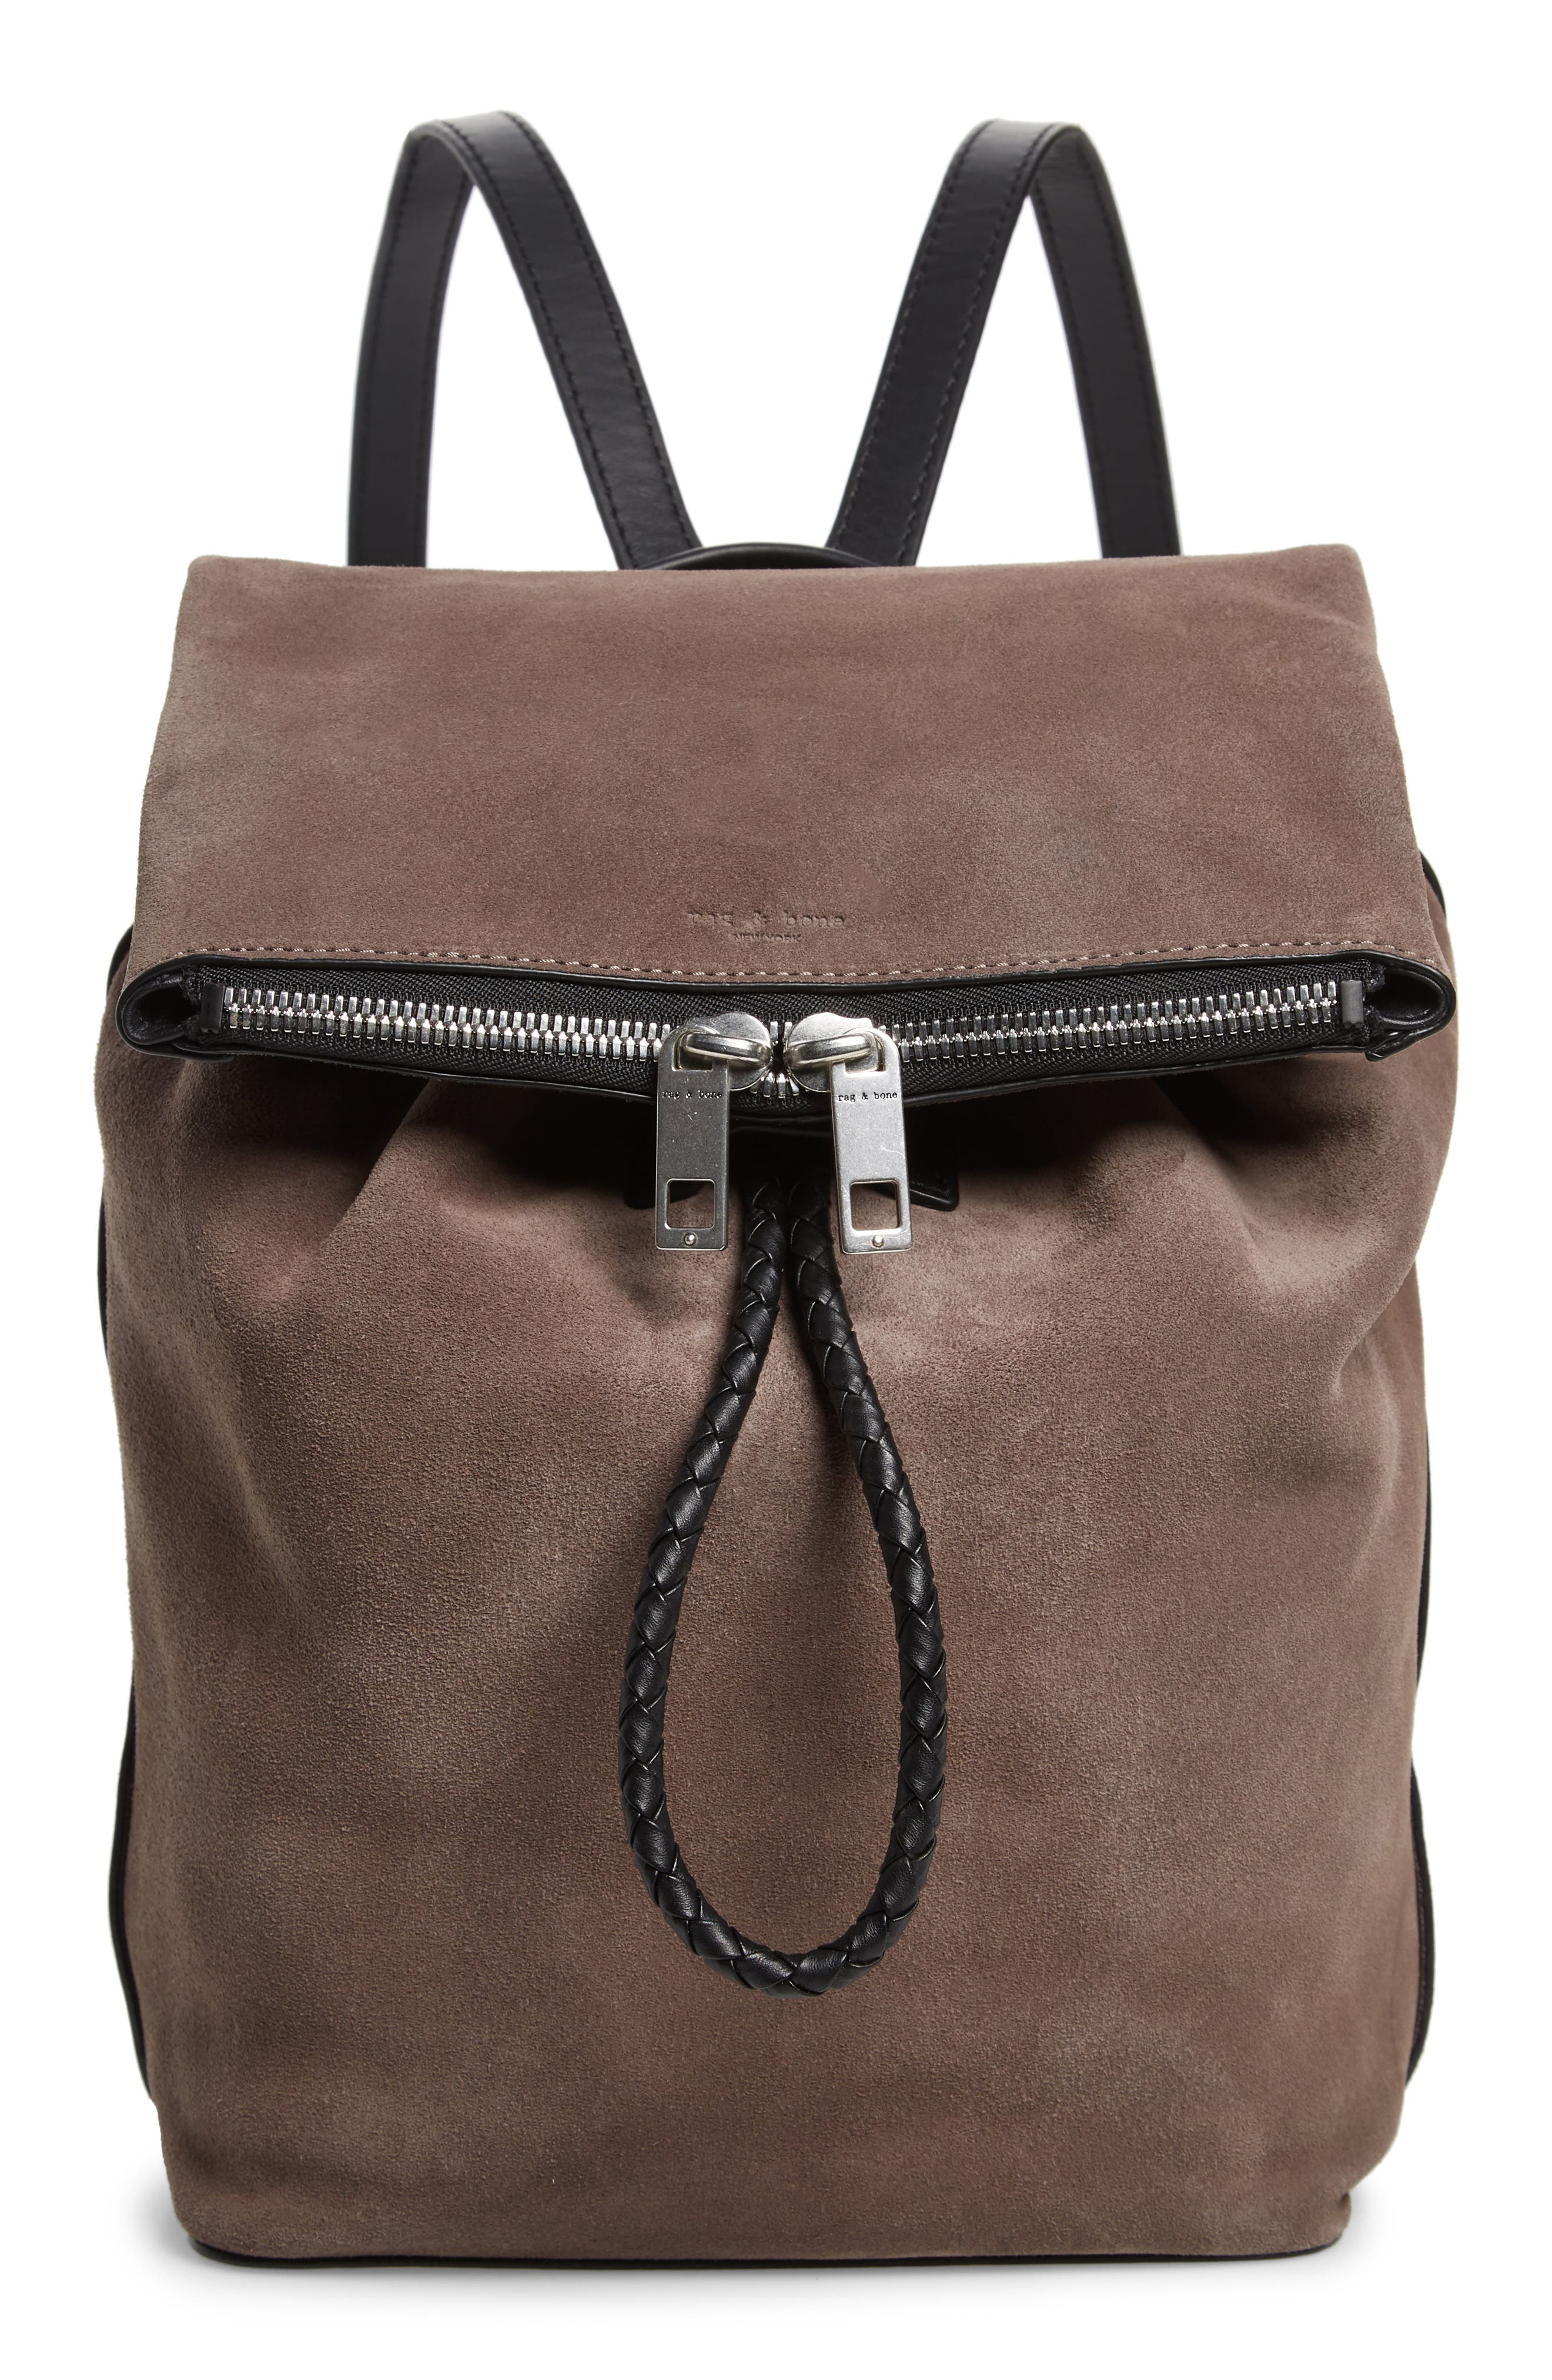 Loner Leather Backpack,                             Main thumbnail 1, color,                             ELEPHANT SUEDE